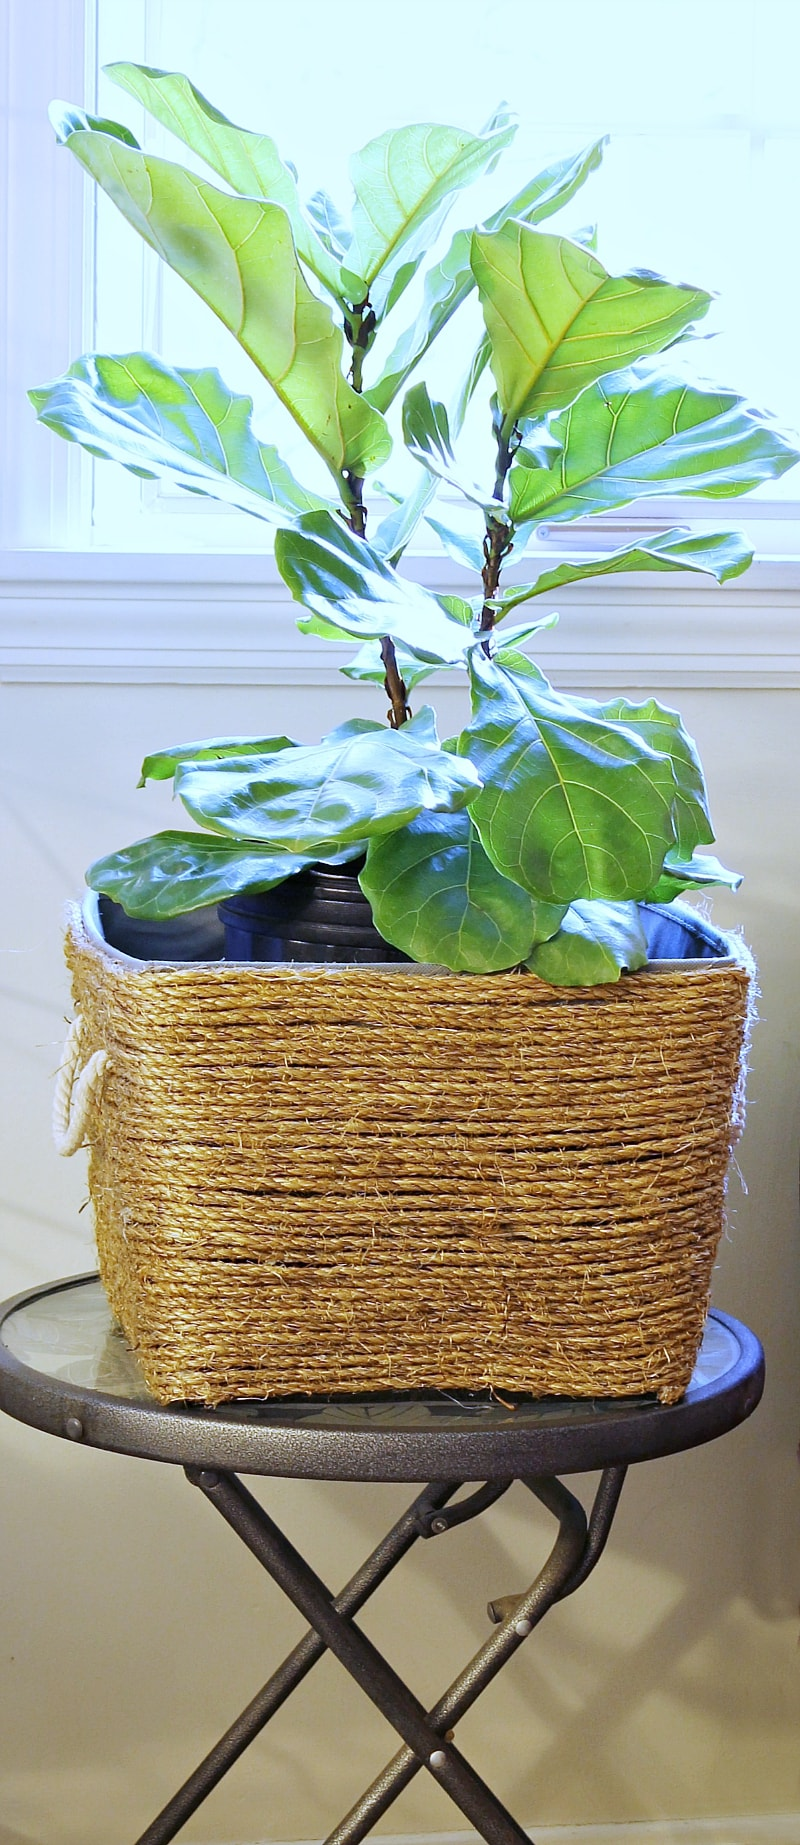 DIY rope basket planter with a fiddle leaf fig tree.